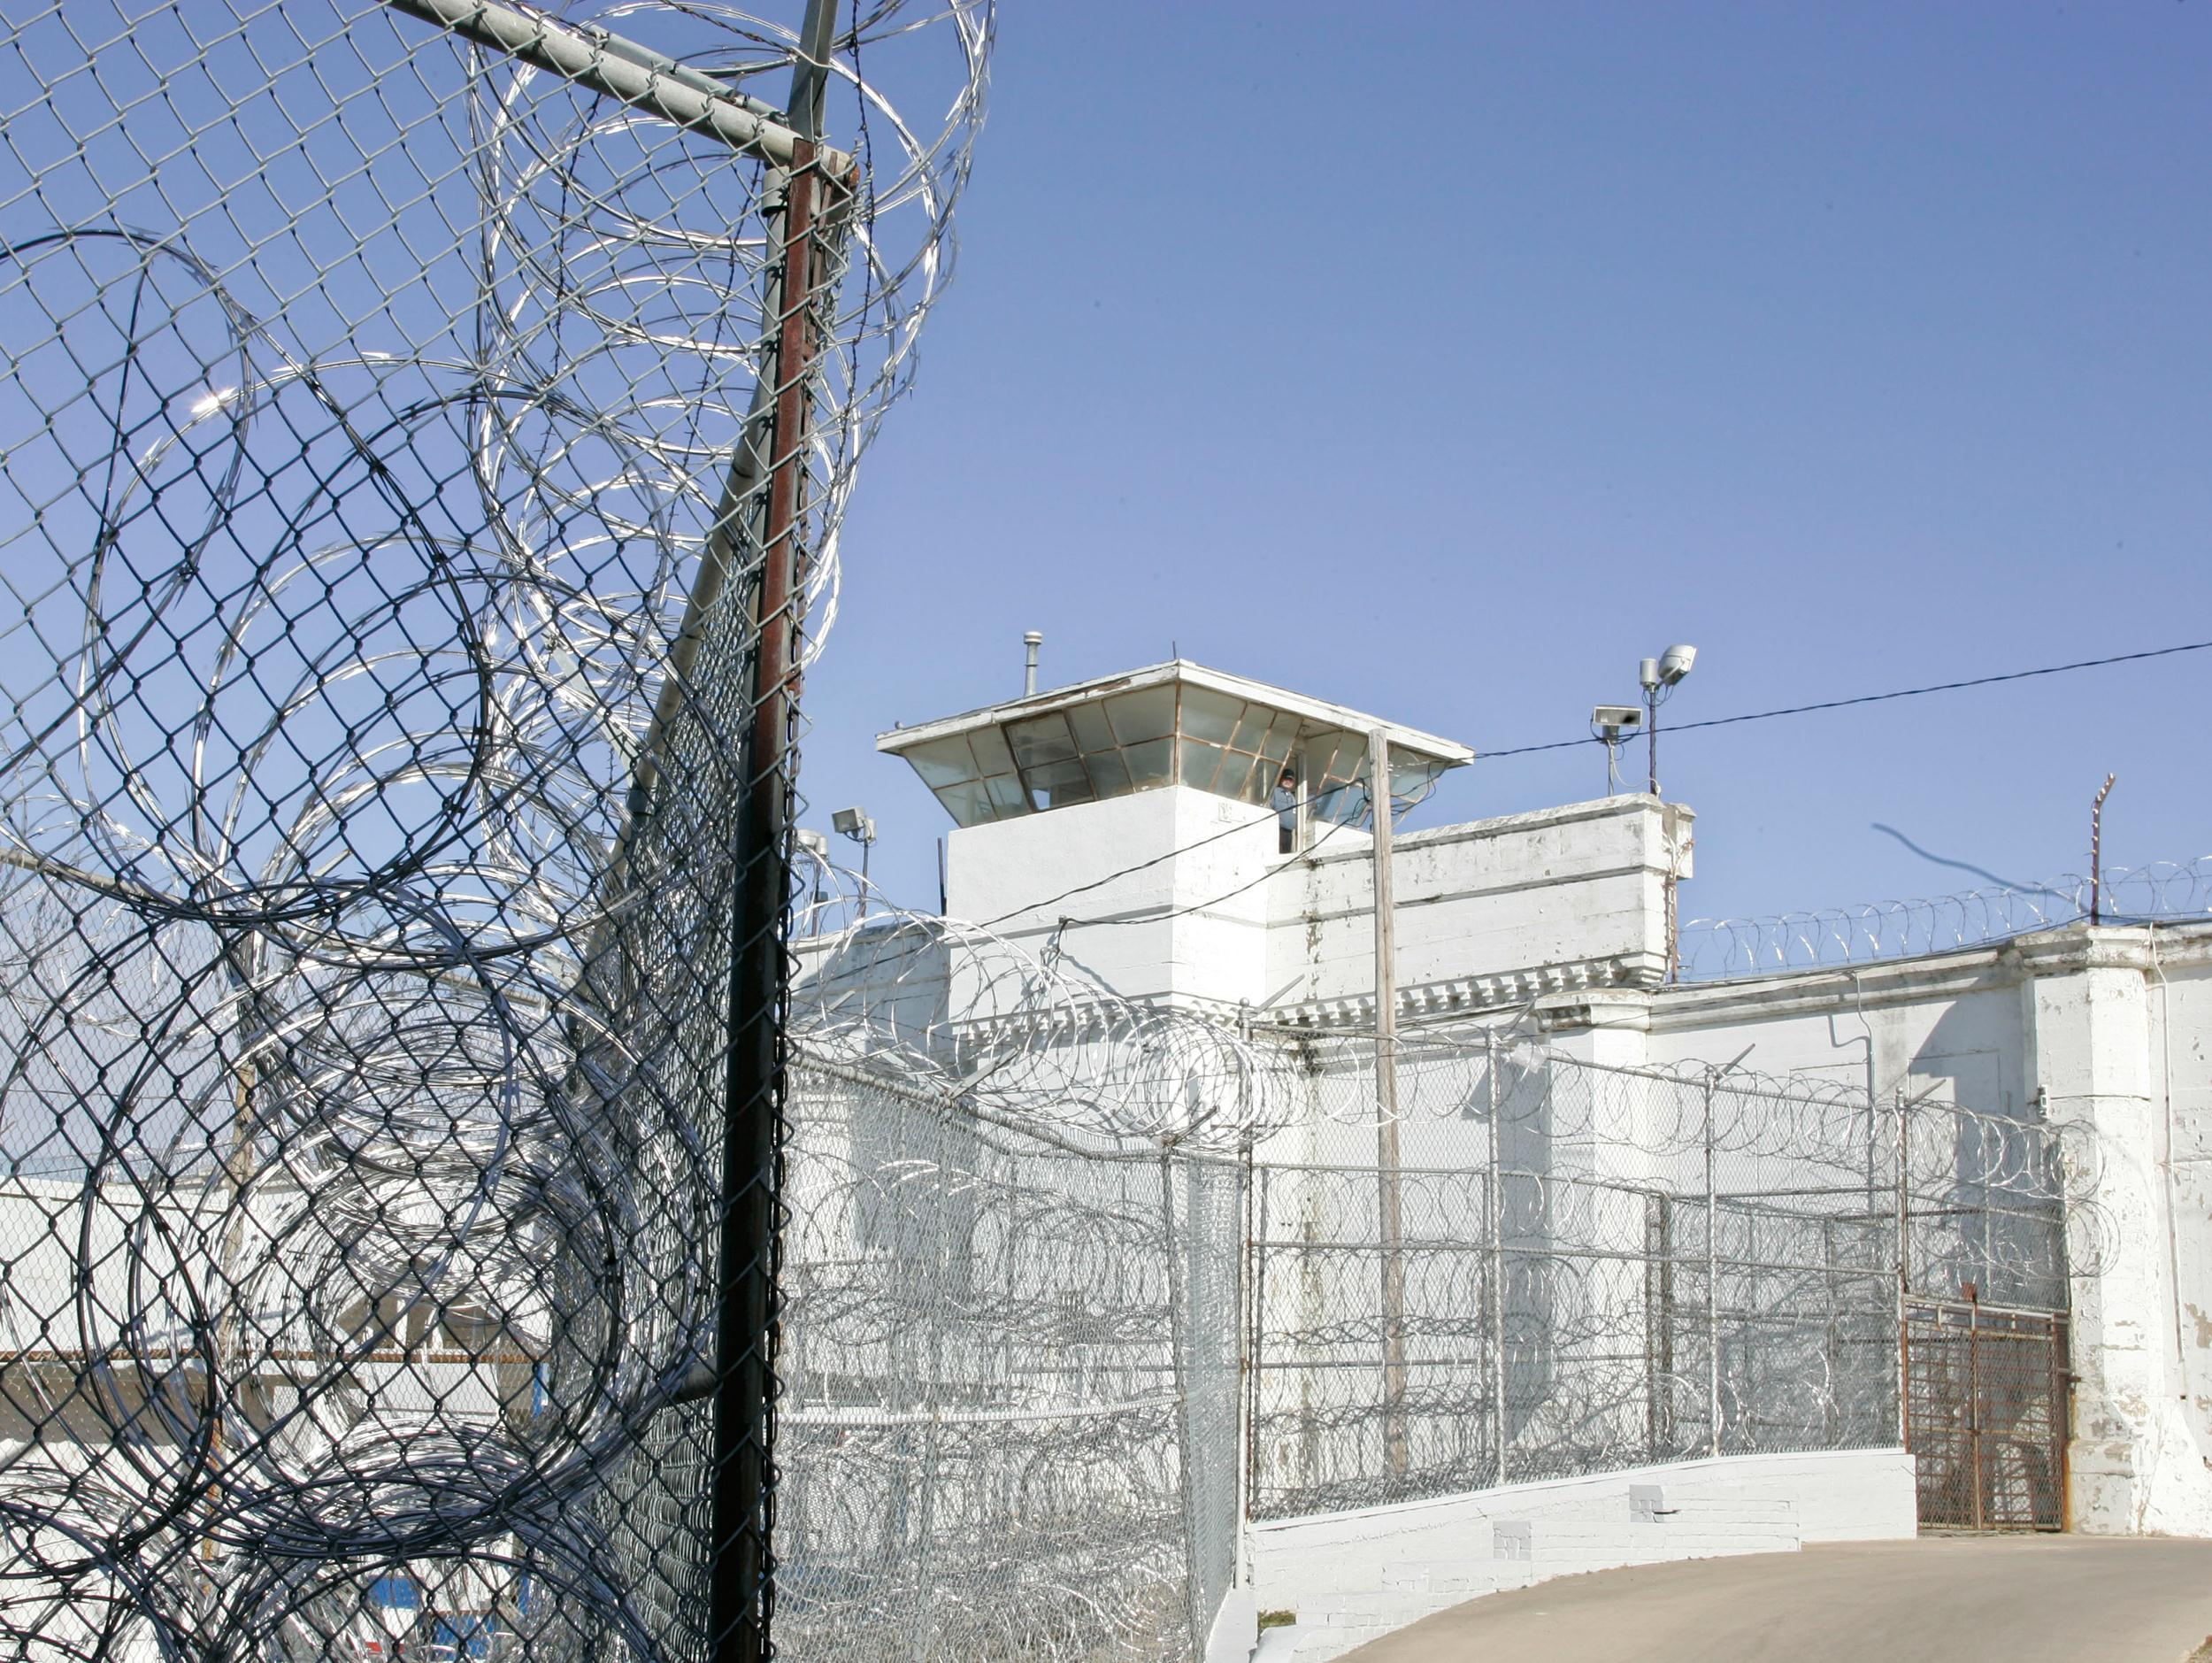 Image: A guard tower and razor wire at the  Oklahoma State Penitentiary in McAlester, Okla.